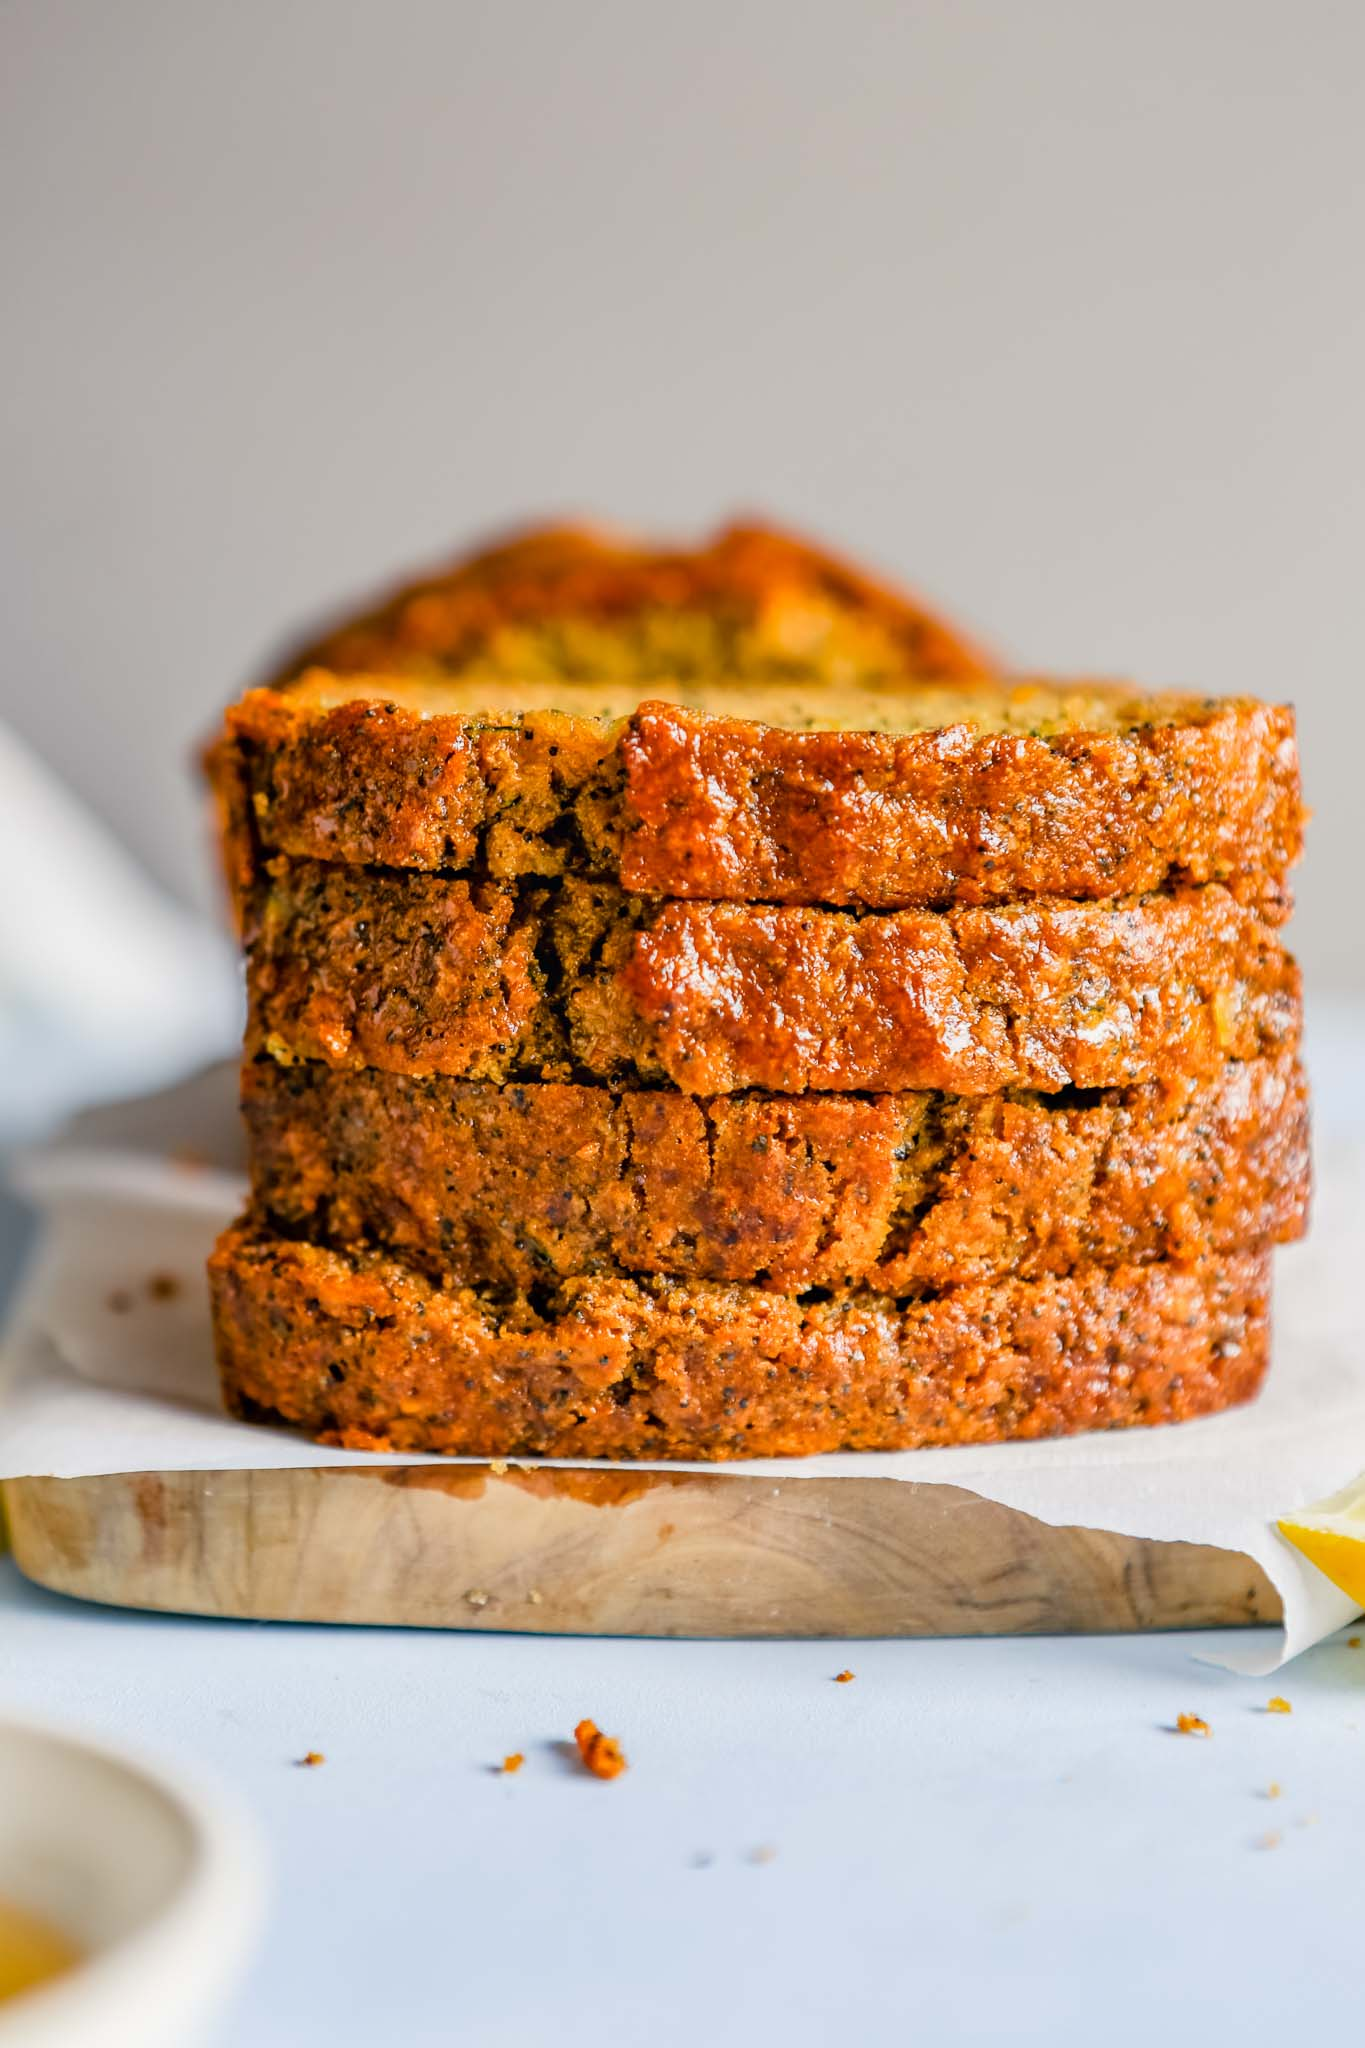 Photograph of slices of lemon zucchini bread stacked on top of each other